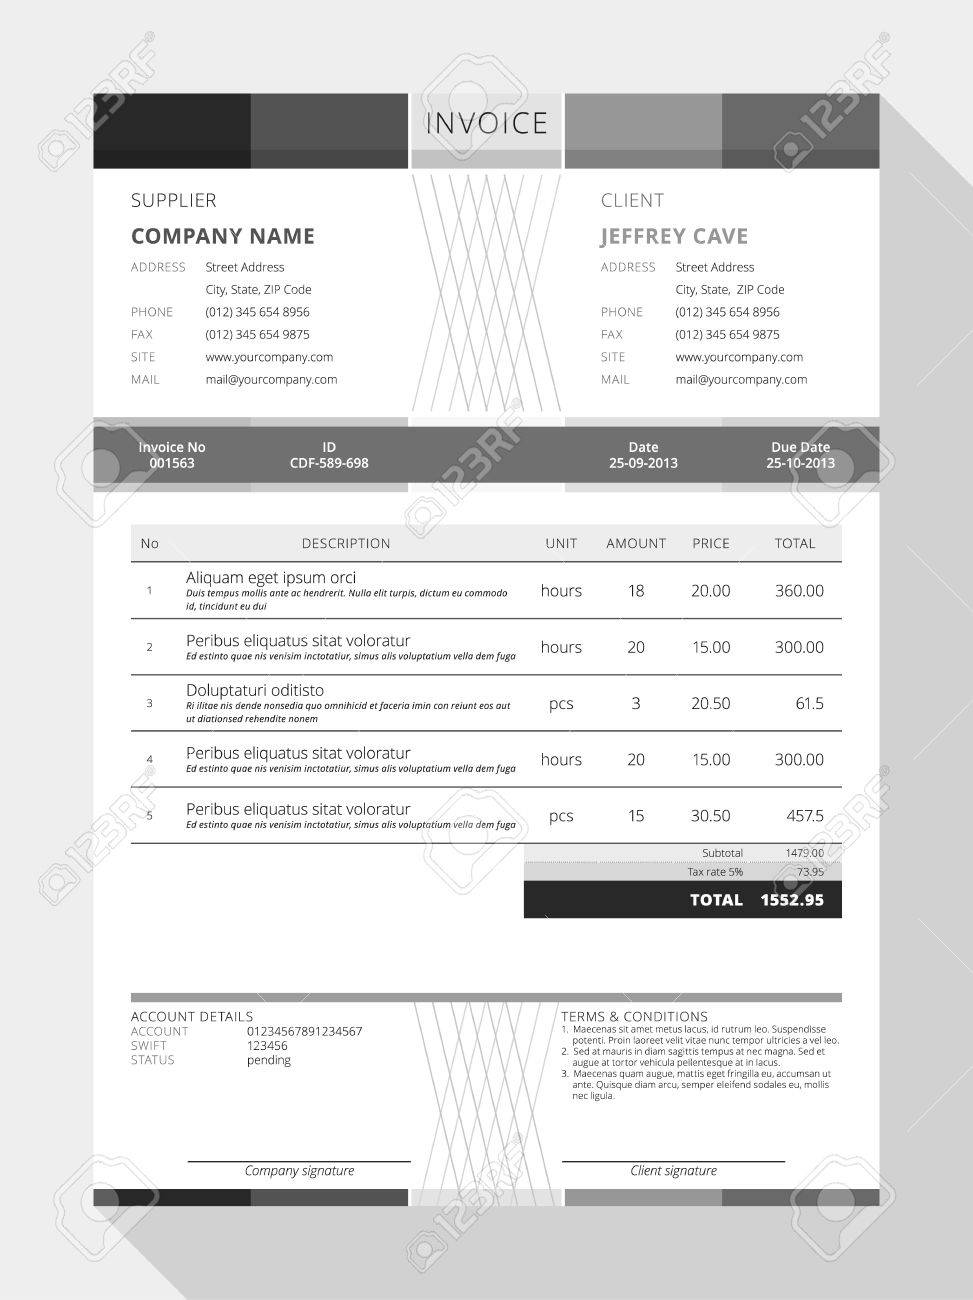 Ebitus  Gorgeous Design An Invoice  Professional Graphic Design Invoice  With Great Vector Customizable Invoice Form Template Design Vector   Design An Invoice With Extraordinary Commerical Invoice Also Electronic Invoicing In Addition Service Invoice And Paypal Invoicing As Well As E Invoicing Additionally Invoice Free From Happytomco With Ebitus  Great Design An Invoice  Professional Graphic Design Invoice  With Extraordinary Vector Customizable Invoice Form Template Design Vector   Design An Invoice And Gorgeous Commerical Invoice Also Electronic Invoicing In Addition Service Invoice From Happytomco